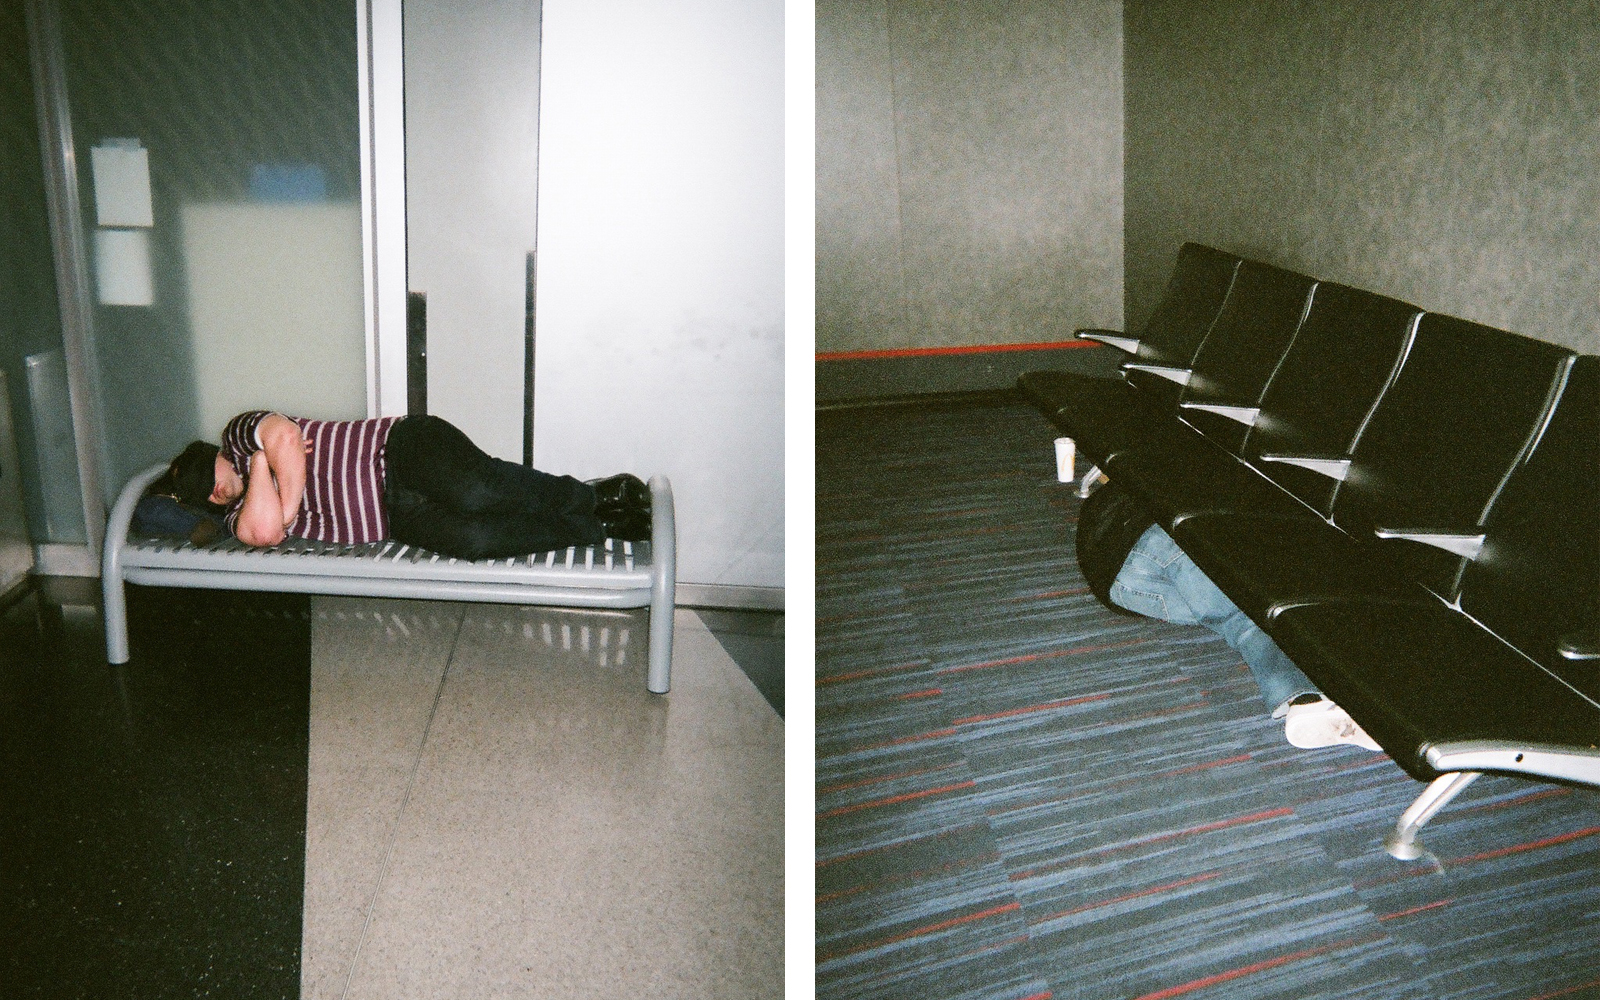 Sleeping Overnight at the Airport